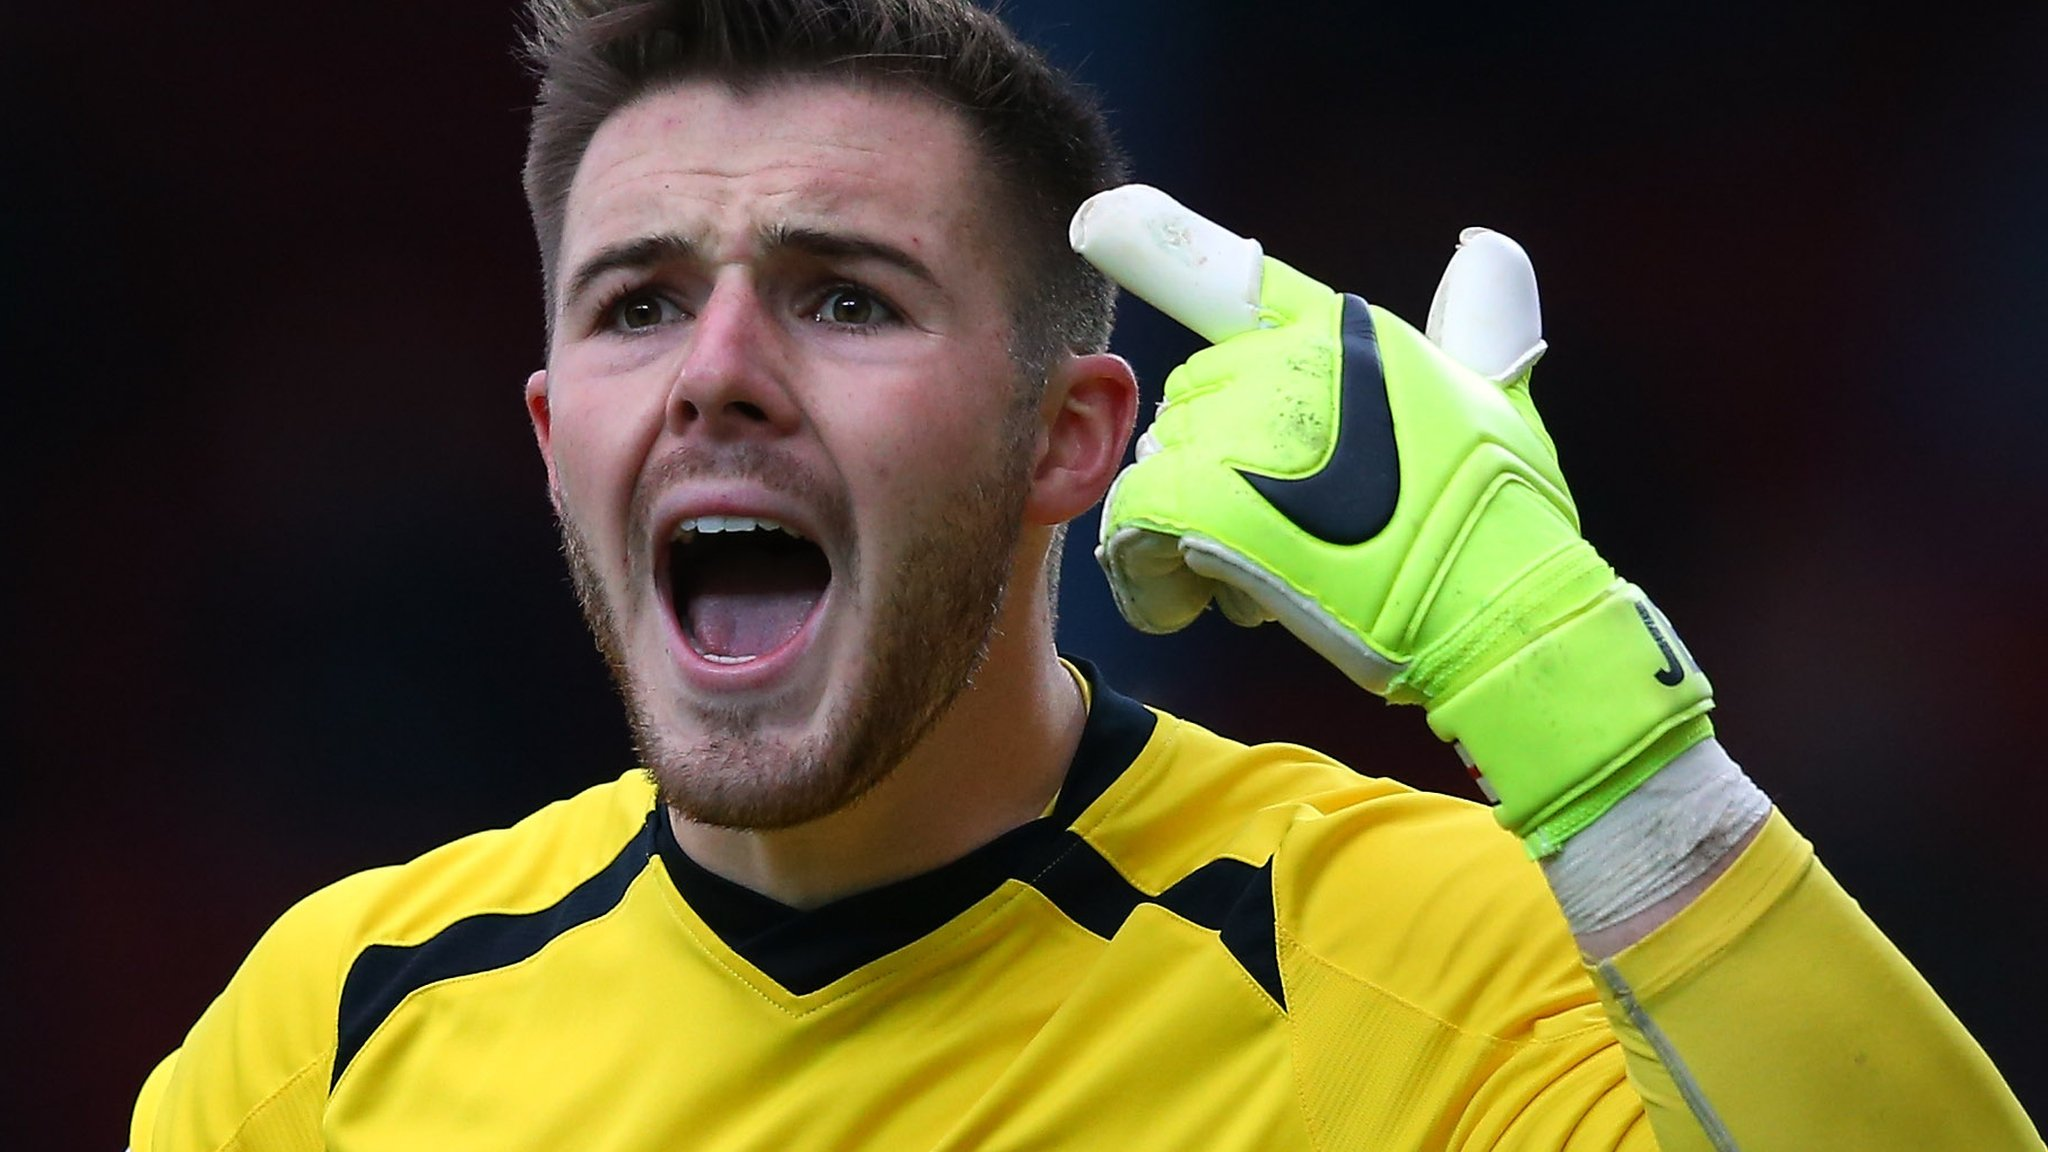 Jack Butland: Stoke City goalkeeper fully motivated and close to return after lost year